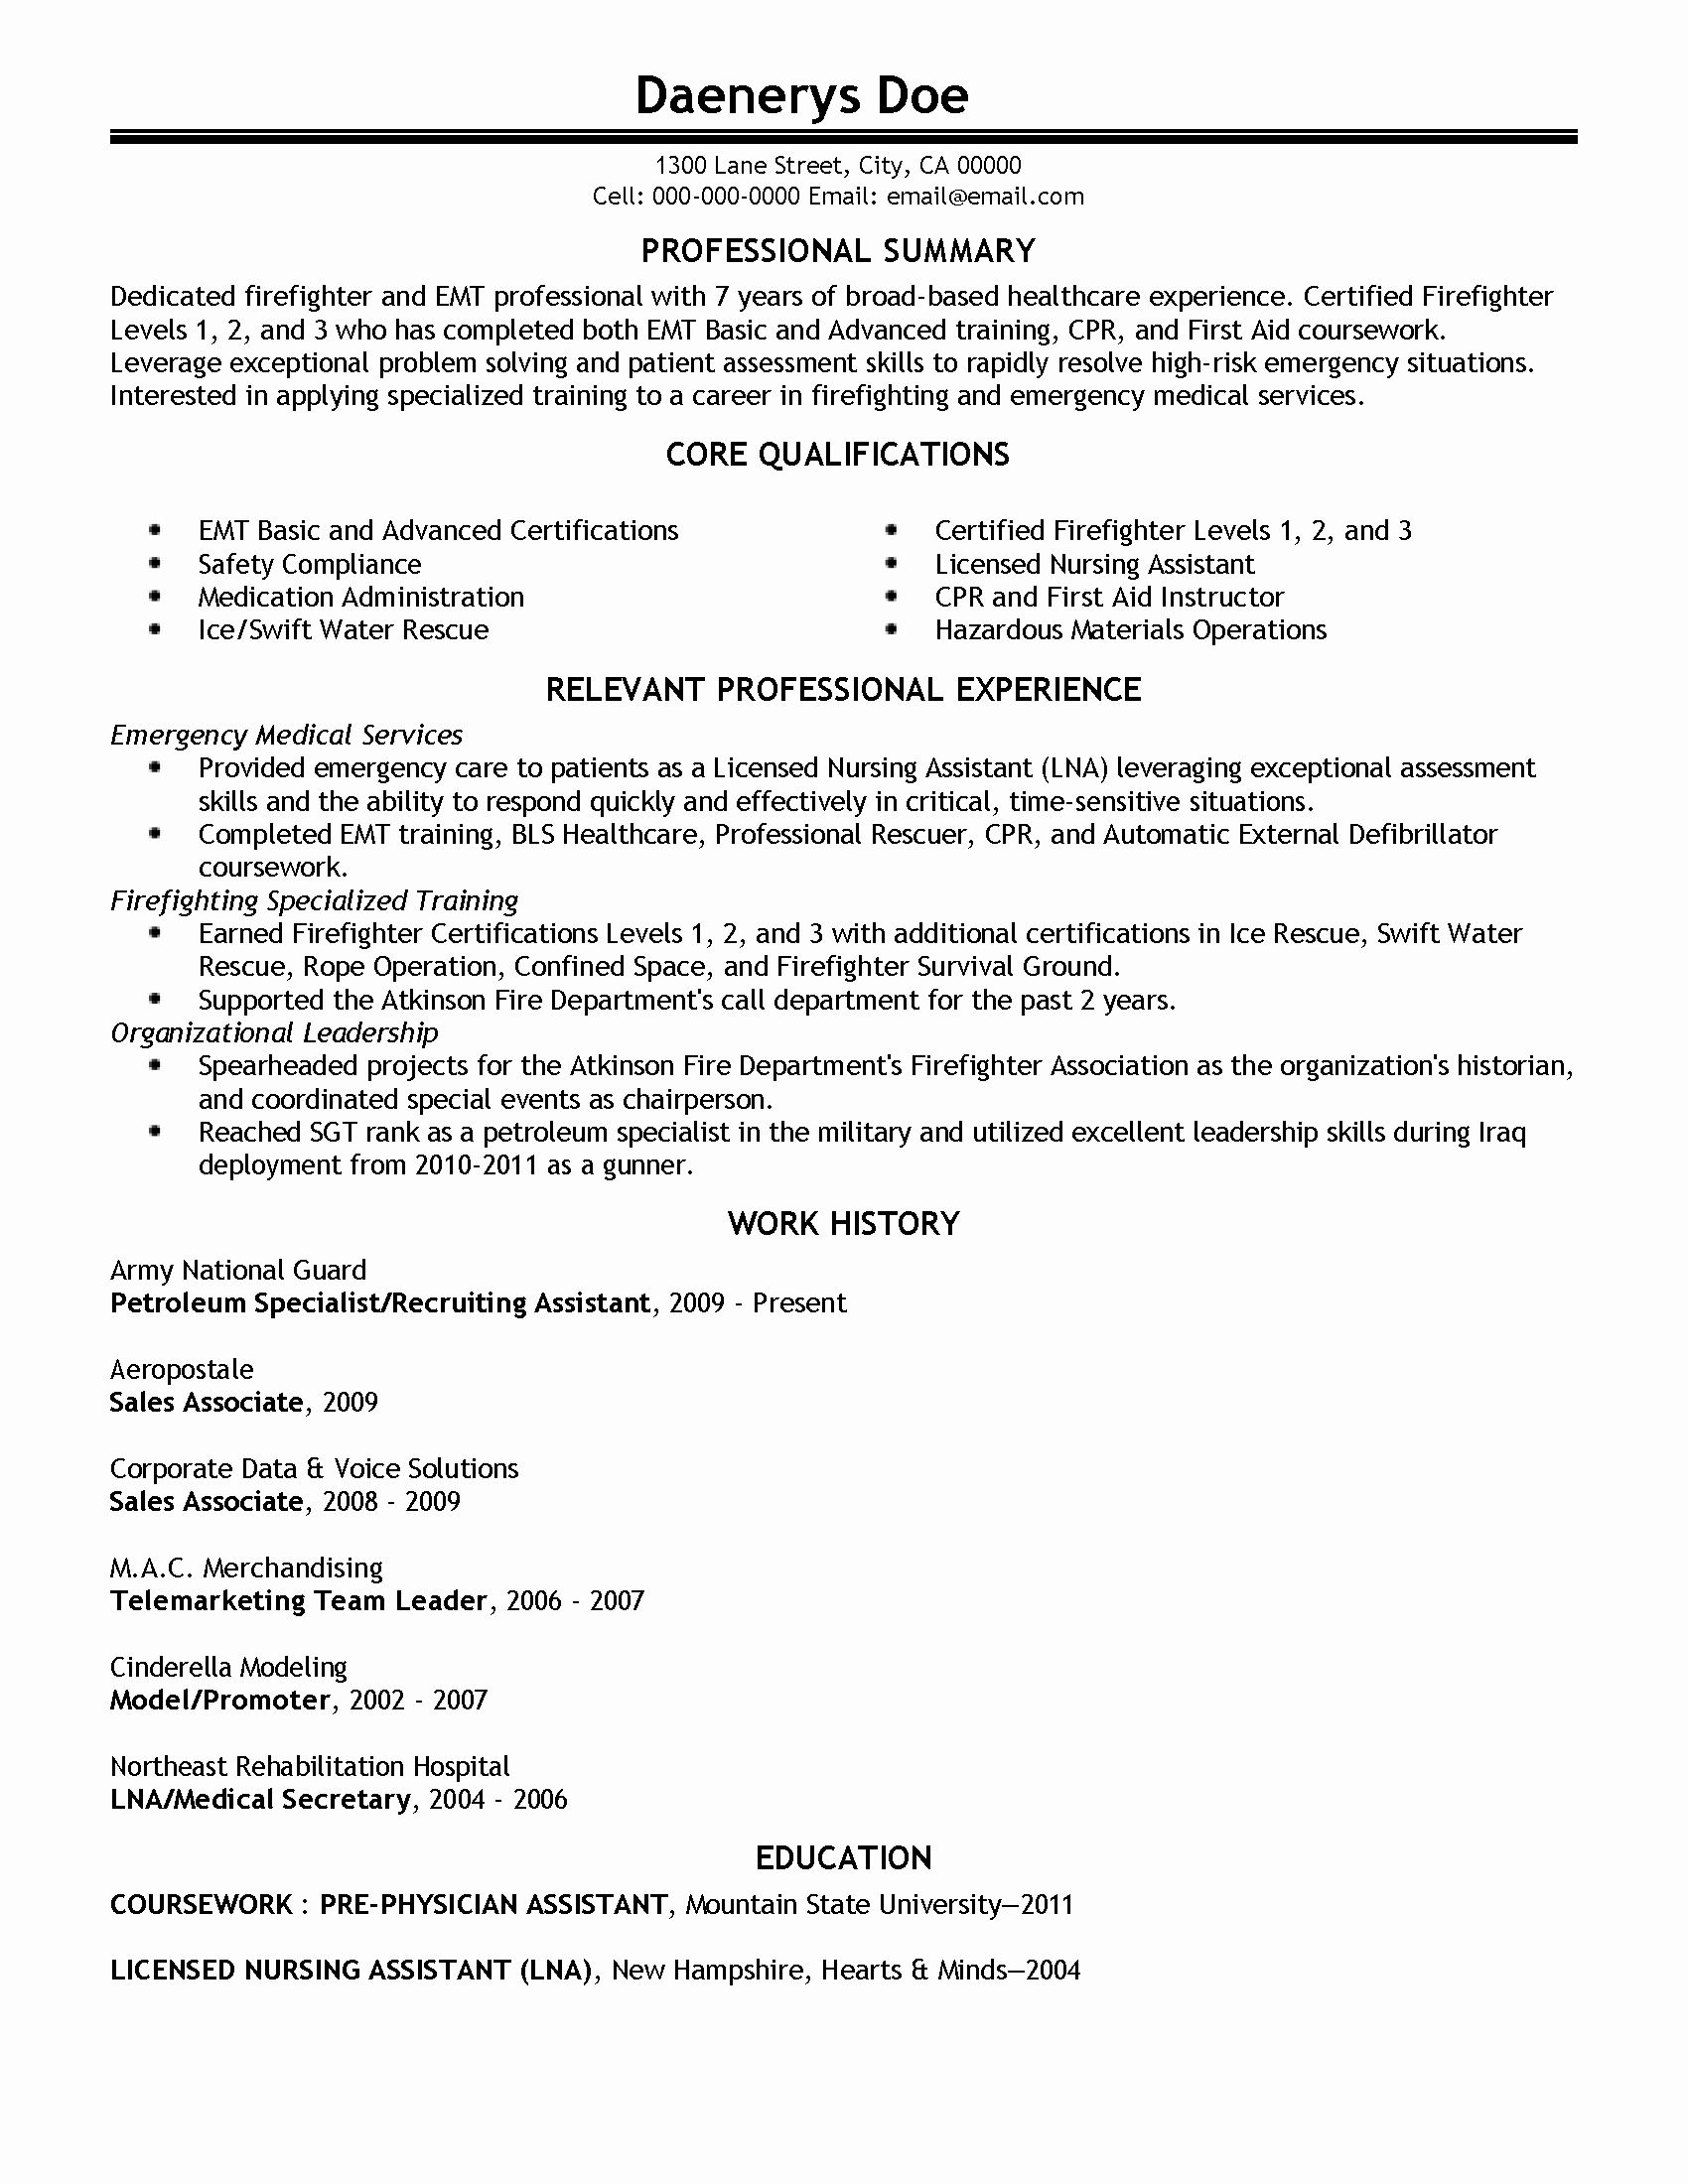 Lab Assistant Job Description Resume Inspirational Professional Emergency Medical Technician Template Medical Assistant Resume Resume Templates Resume Examples